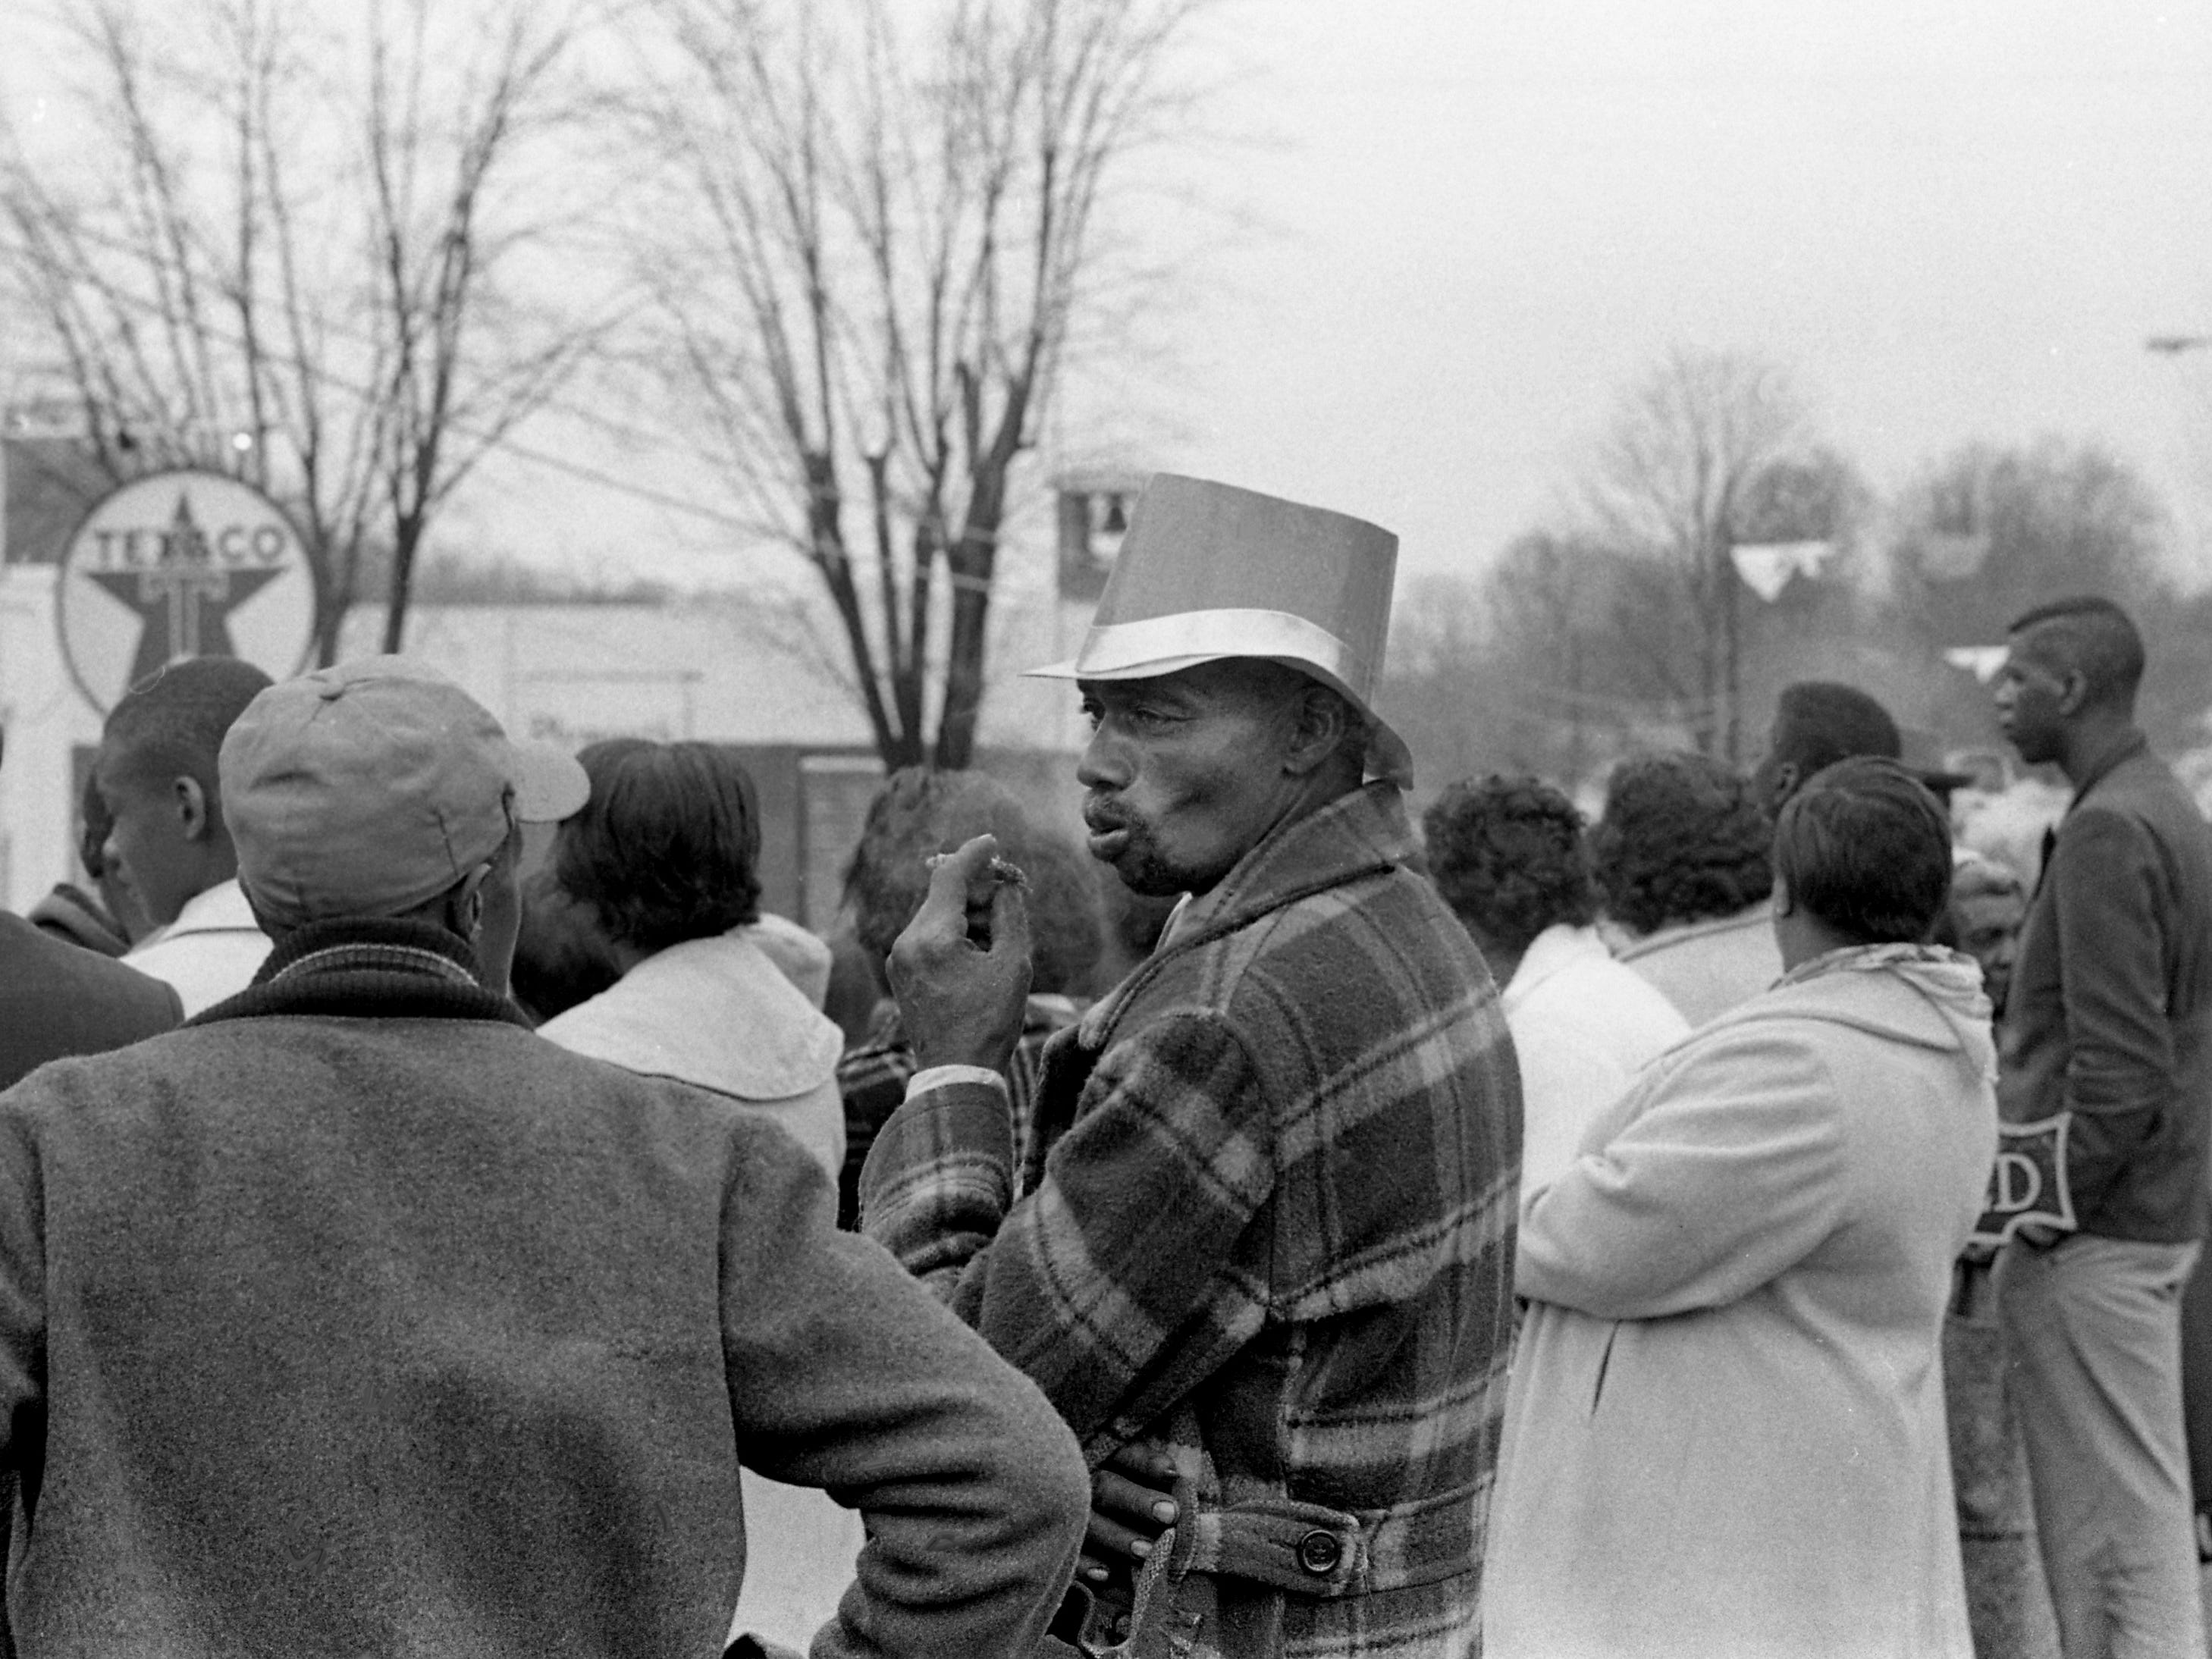 The luck of the Irish held in the face of threatening thunderstorms throughout the day, as some folks enjoy the parade of the second annual Wearing of the Green celebration in Erin, Tenn. March 14, 1964.